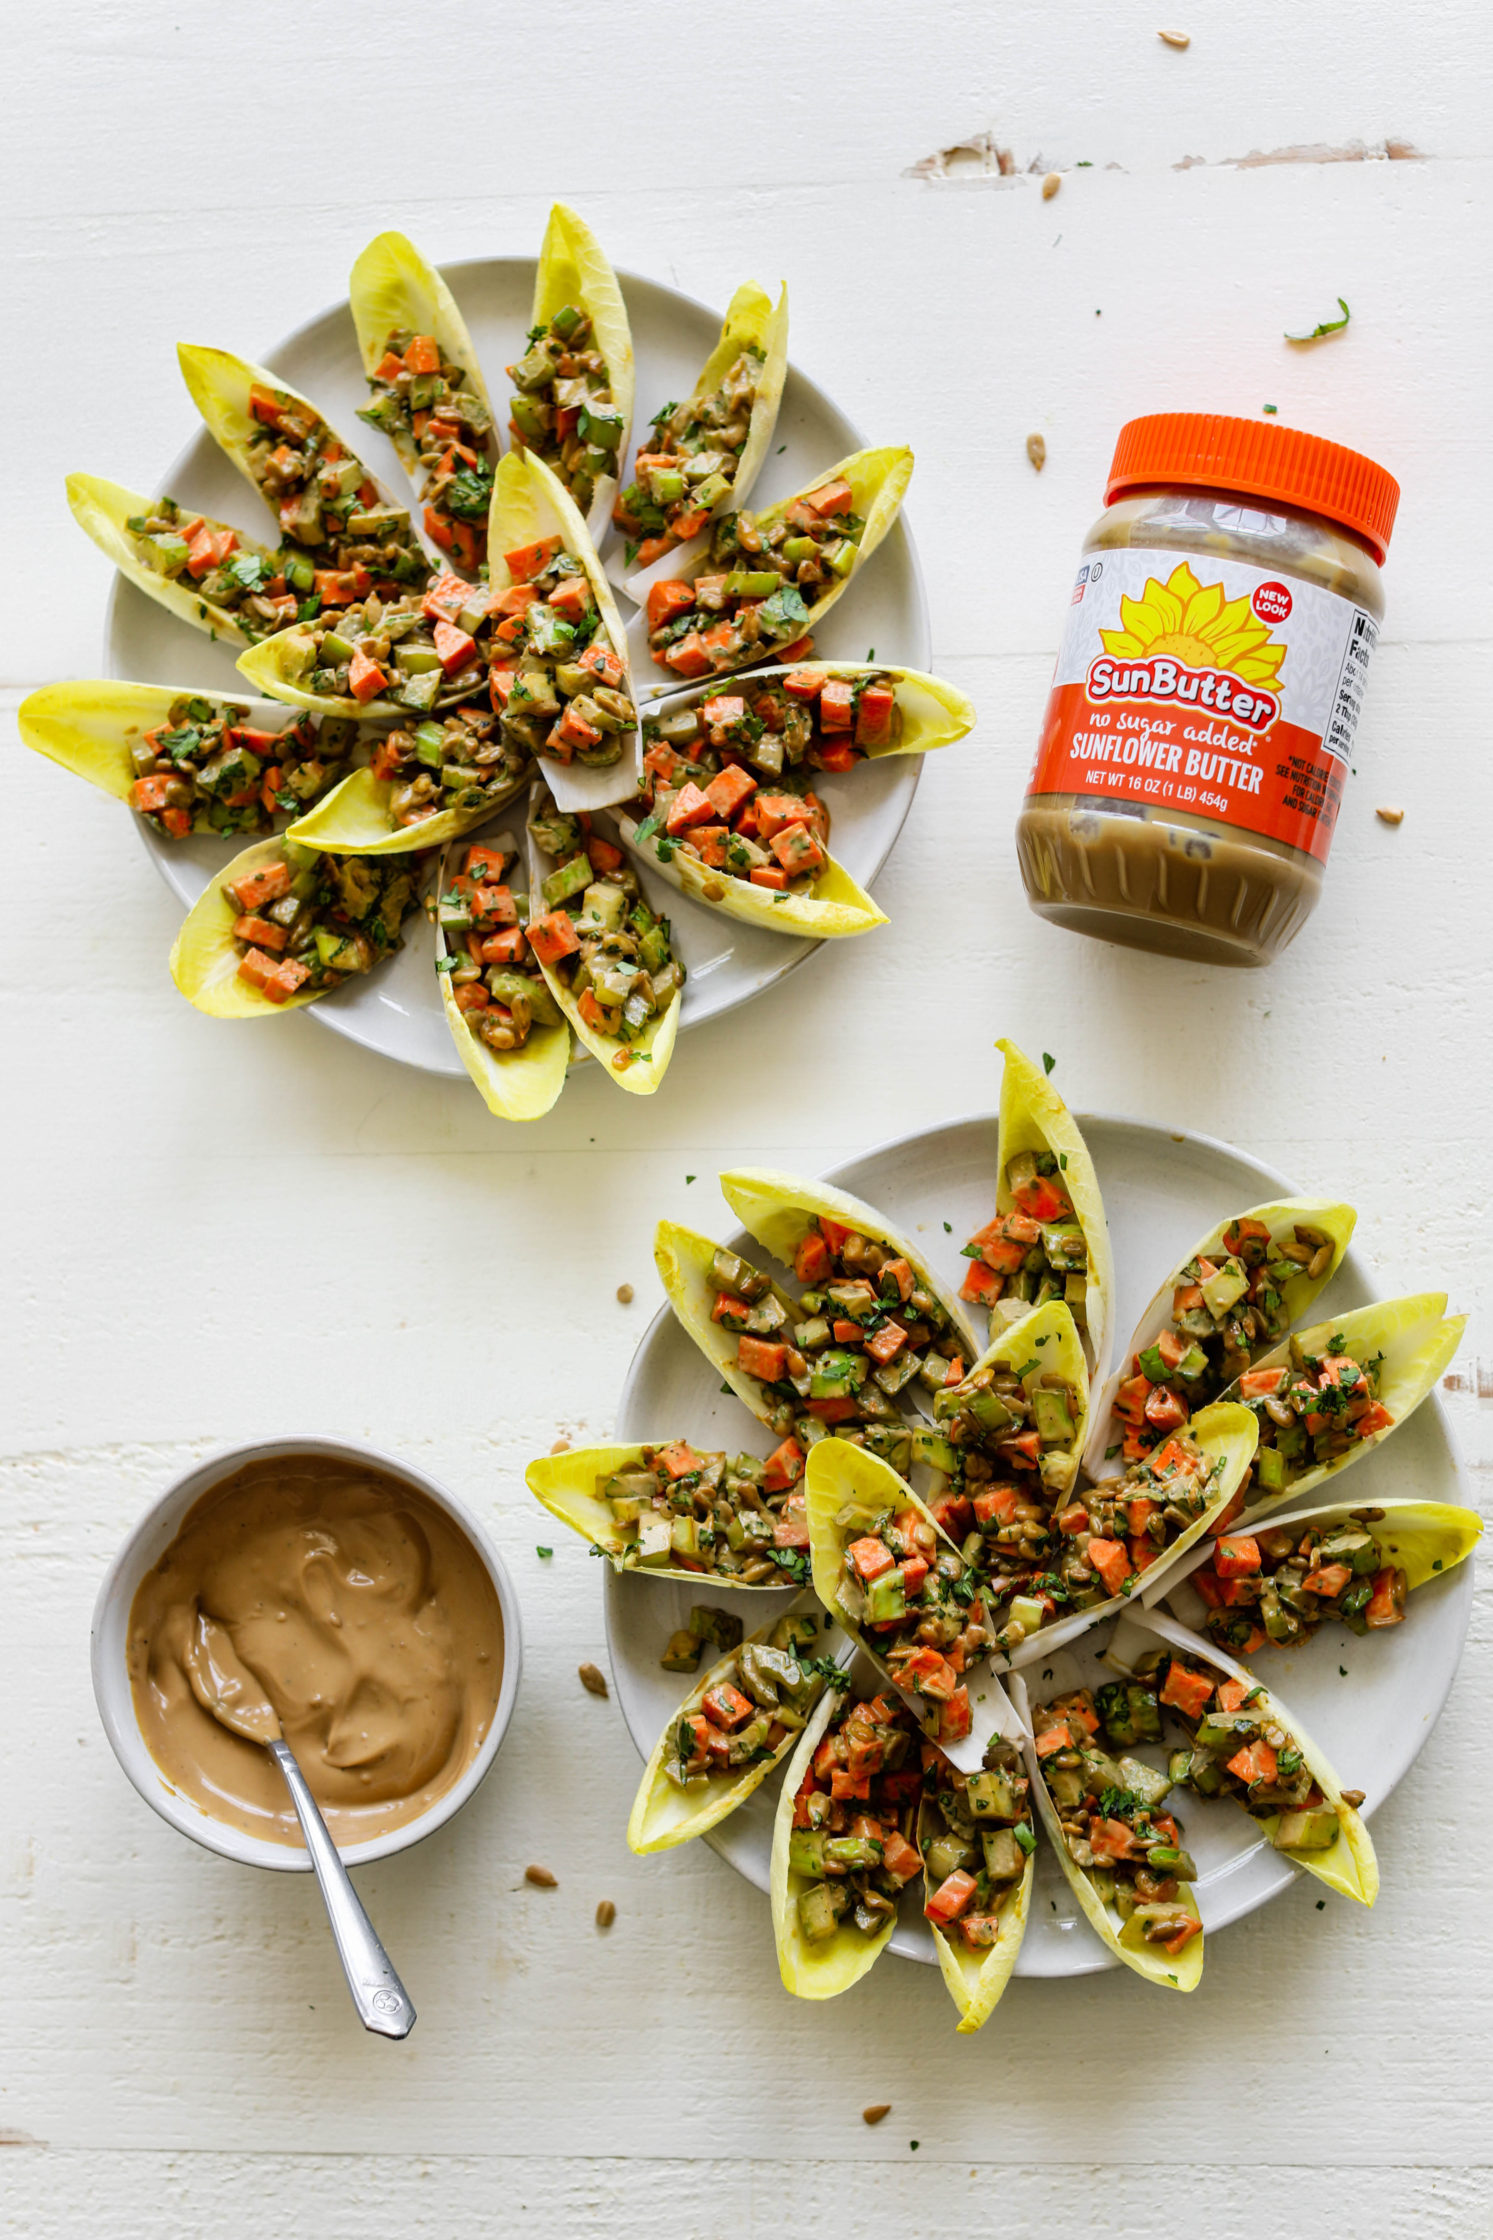 Endive Boats with SunButter Sauce by Flora & Vino